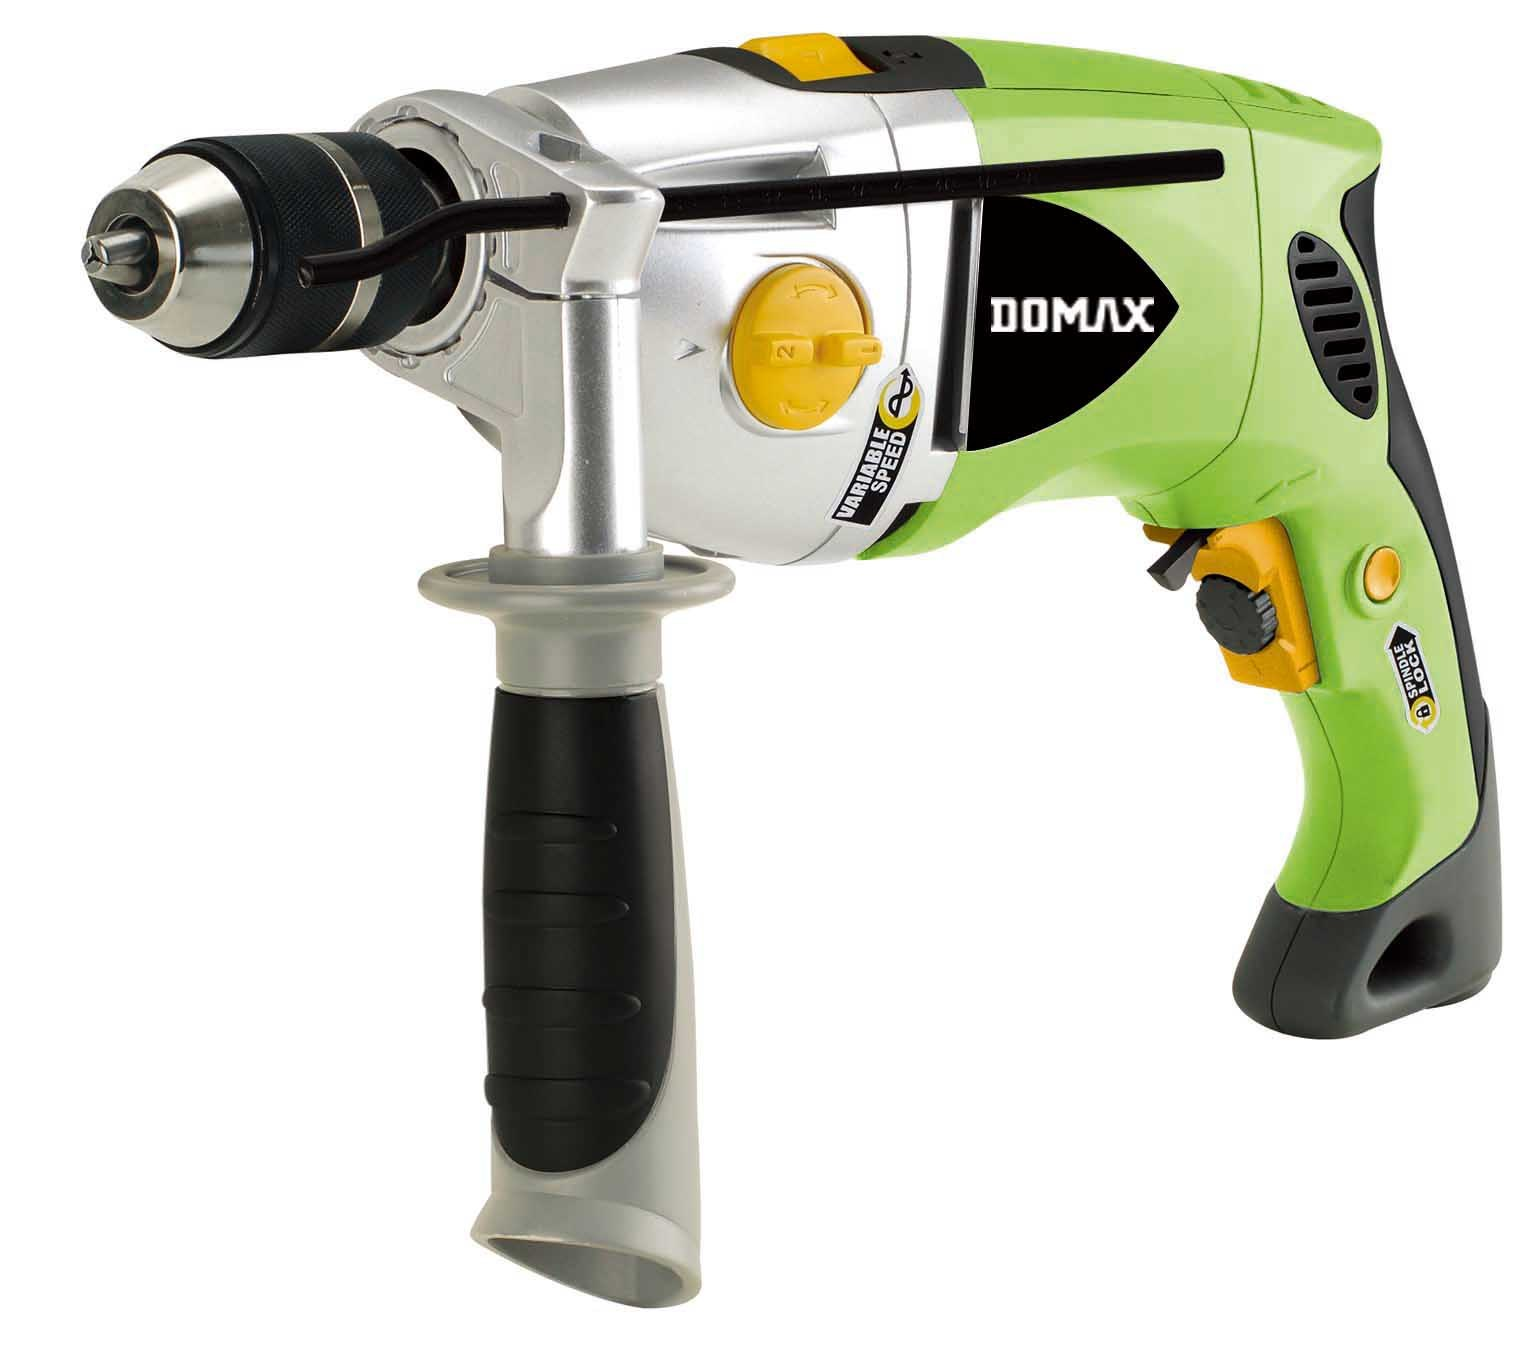 Professional Quality 1050W 16mm Impact Drill